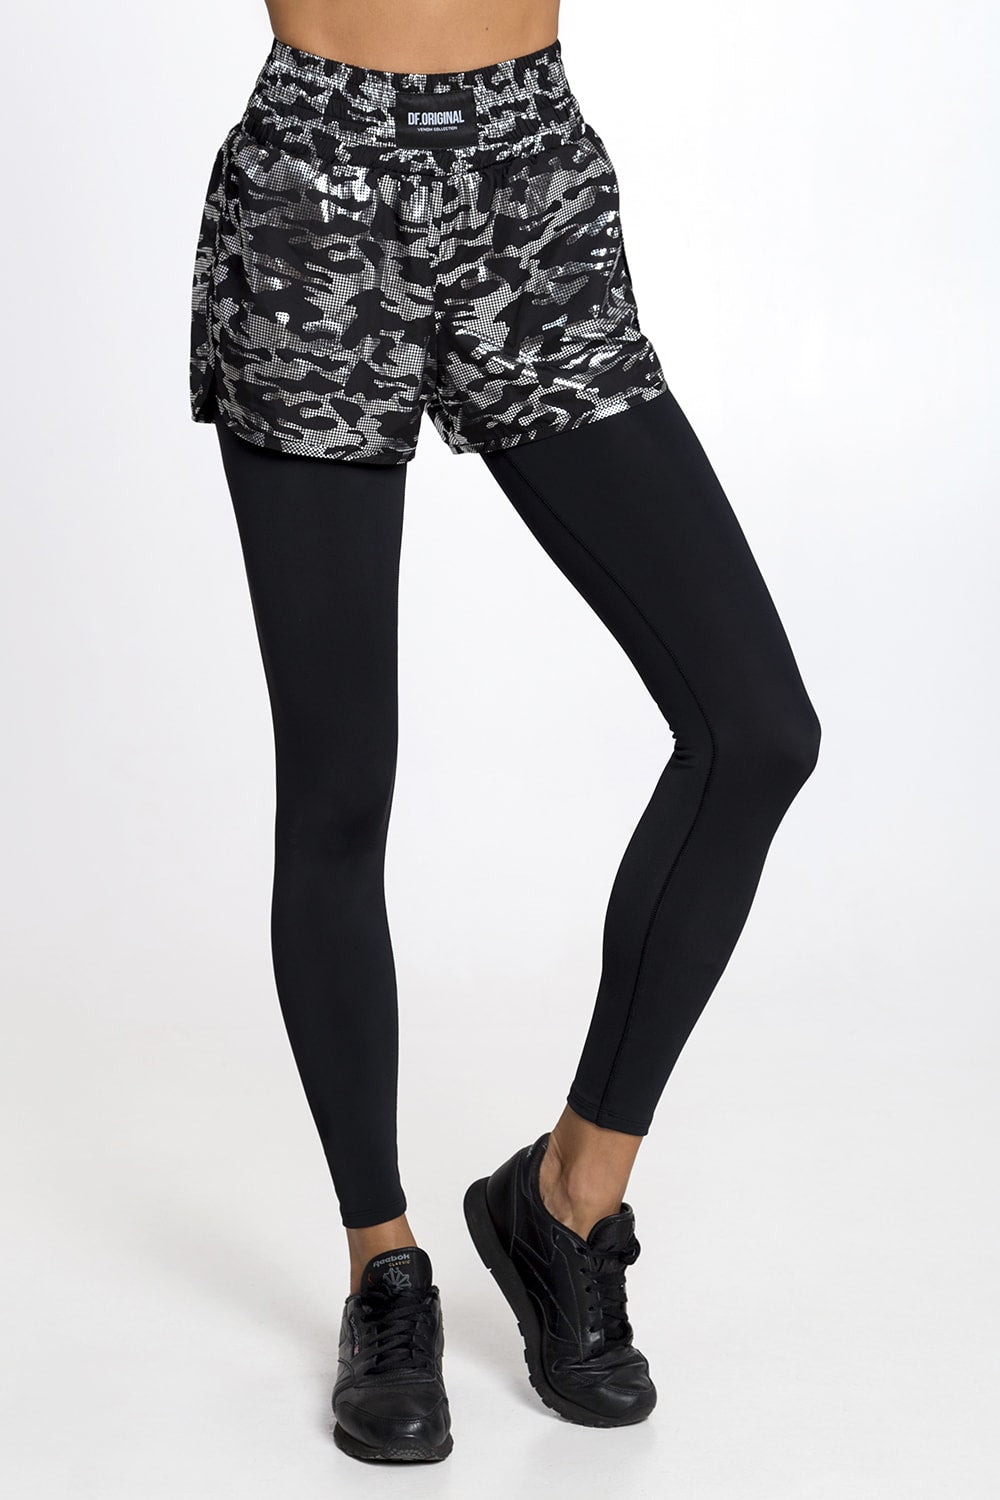 MILITARY SHORTS-LEGGINGS - Designed for Fitness